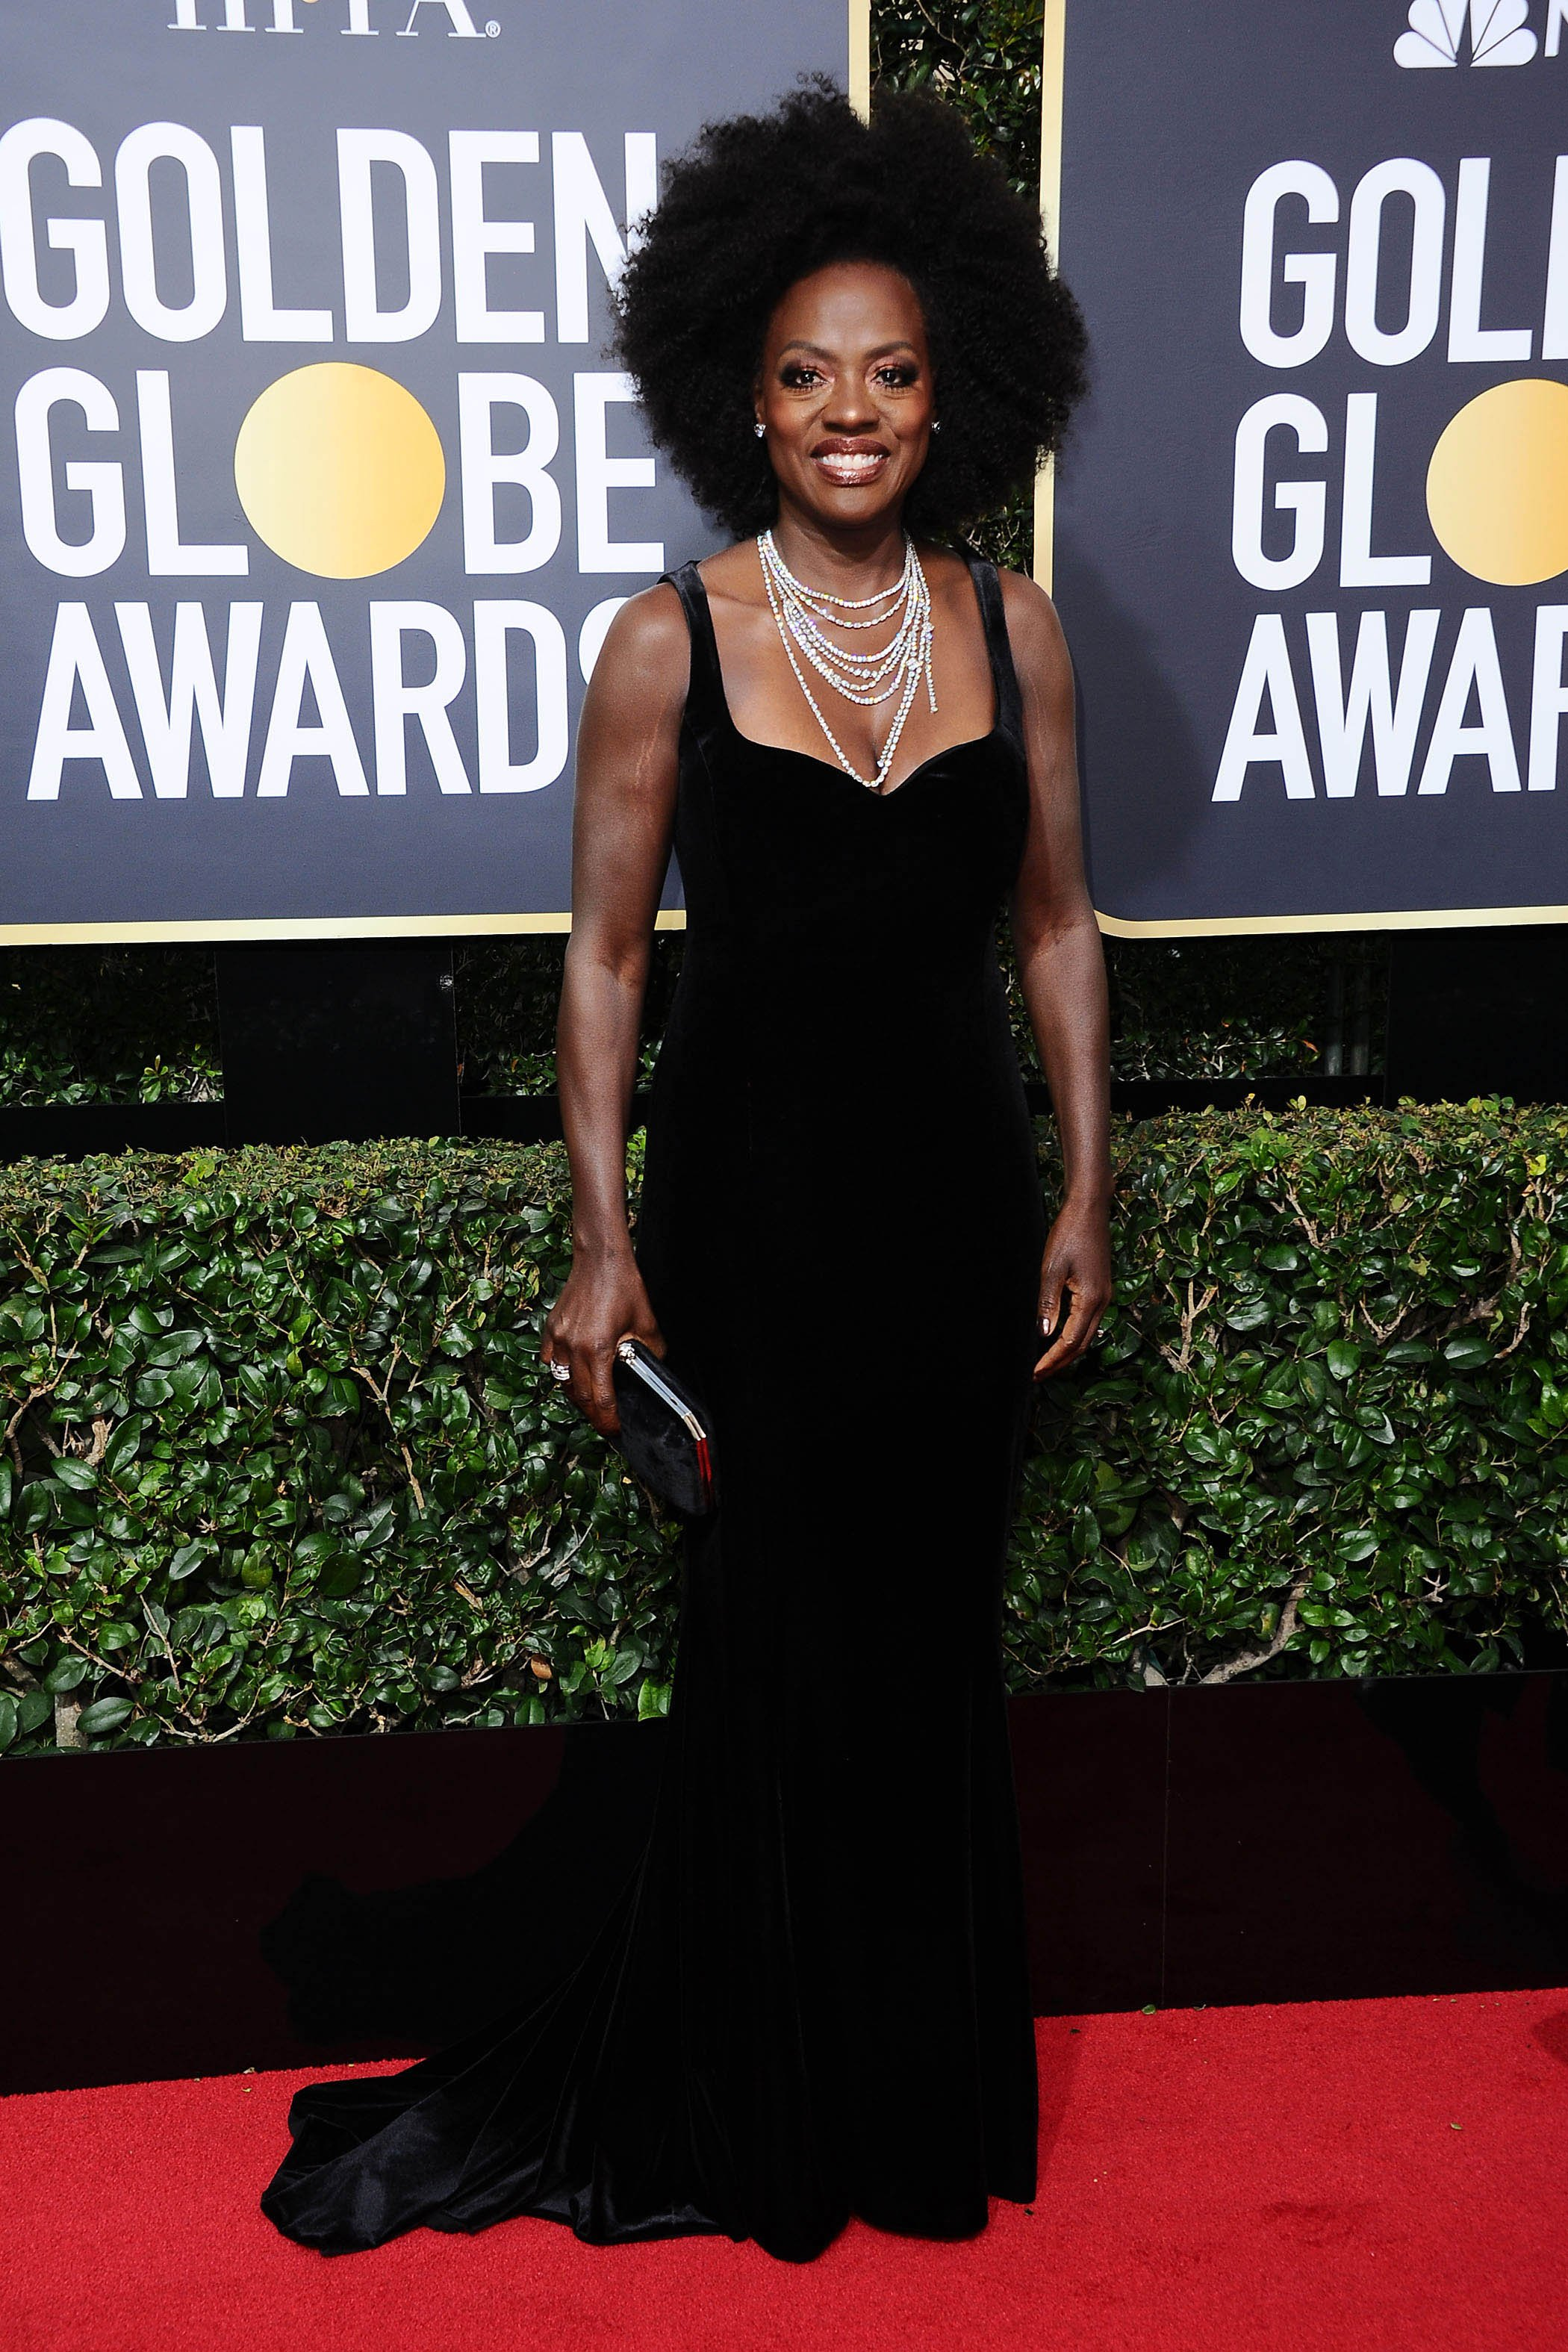 , Beverly Hills, CA -20180107 - The 75th Golden Globe Awards - Arrivals at The Beverly Hilton  -PICTURED: Viola Davis -, Image: 359498089, License: Rights-managed, Restrictions: , Model Release: no, Credit line: Profimedia, INSTAR Images